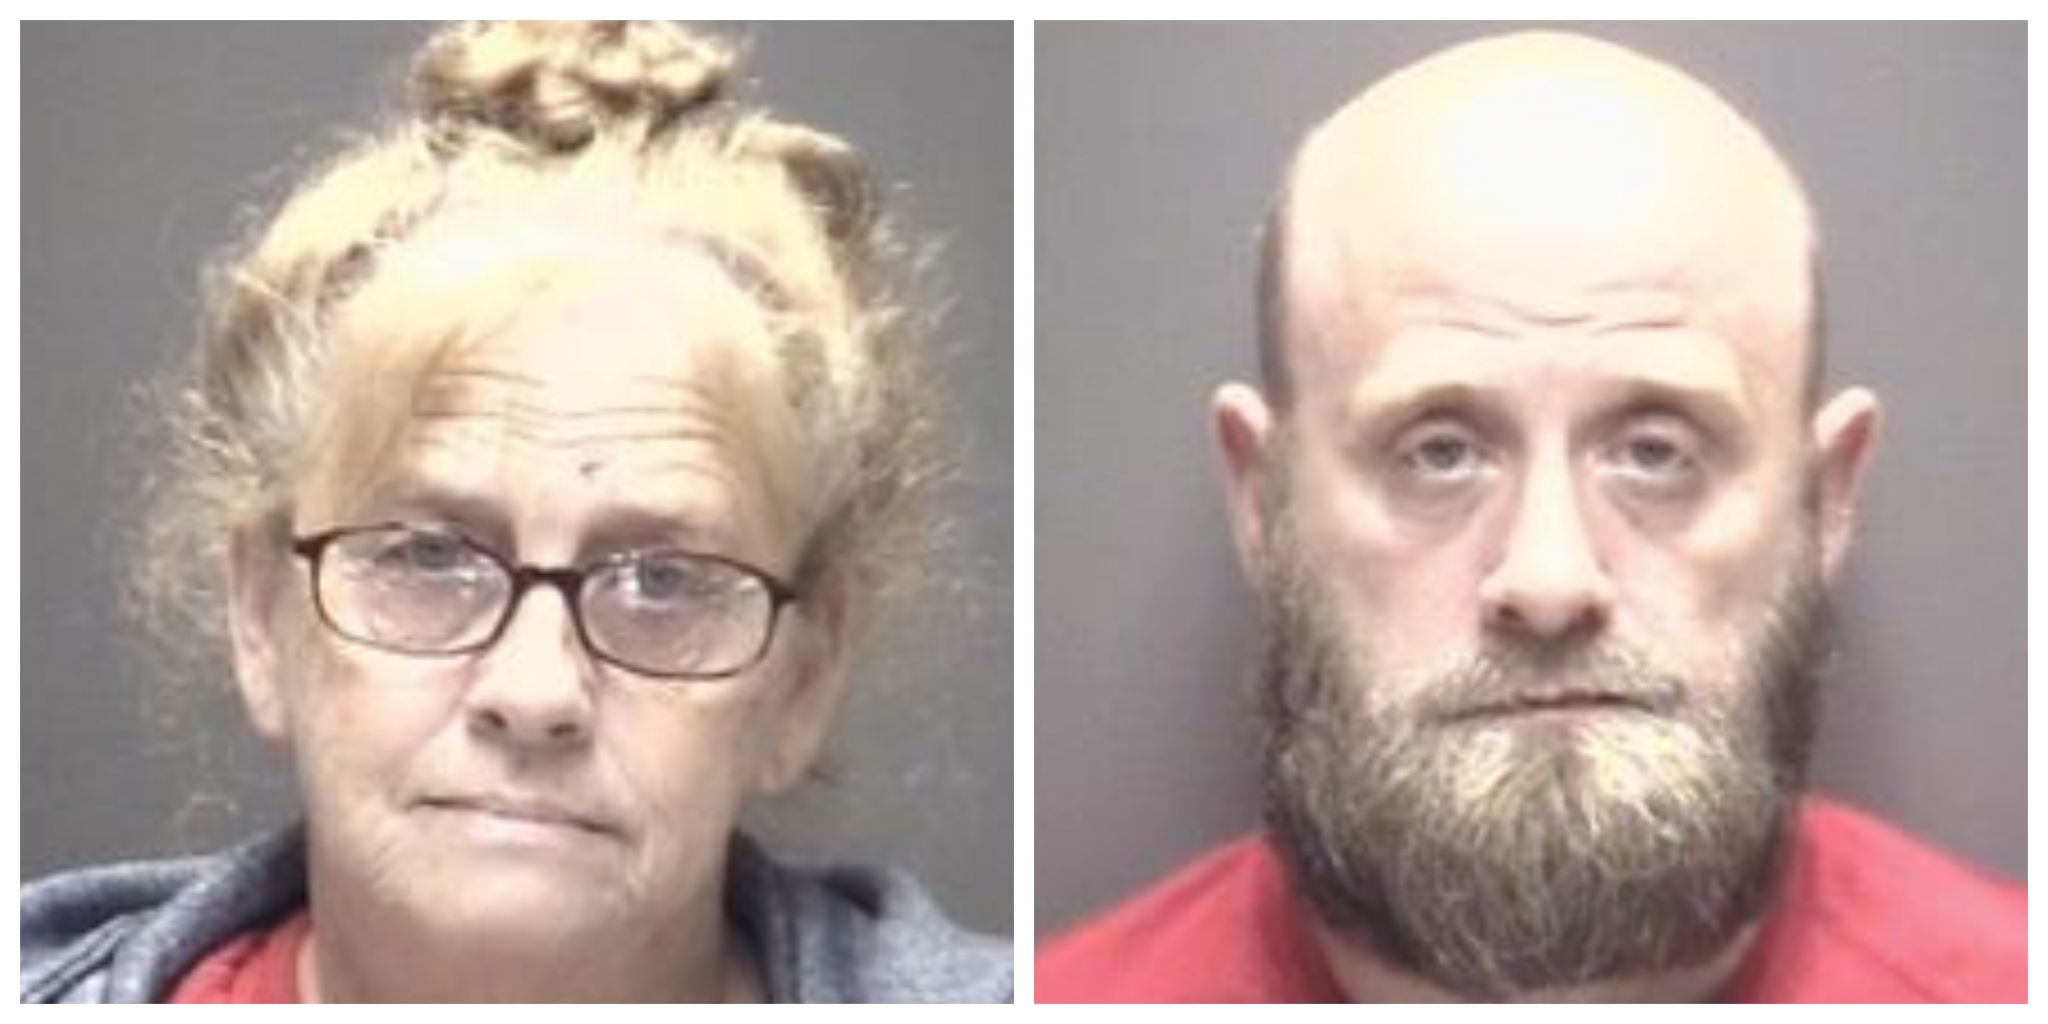 2 in custody after abducted infant found safe at Bacliff home